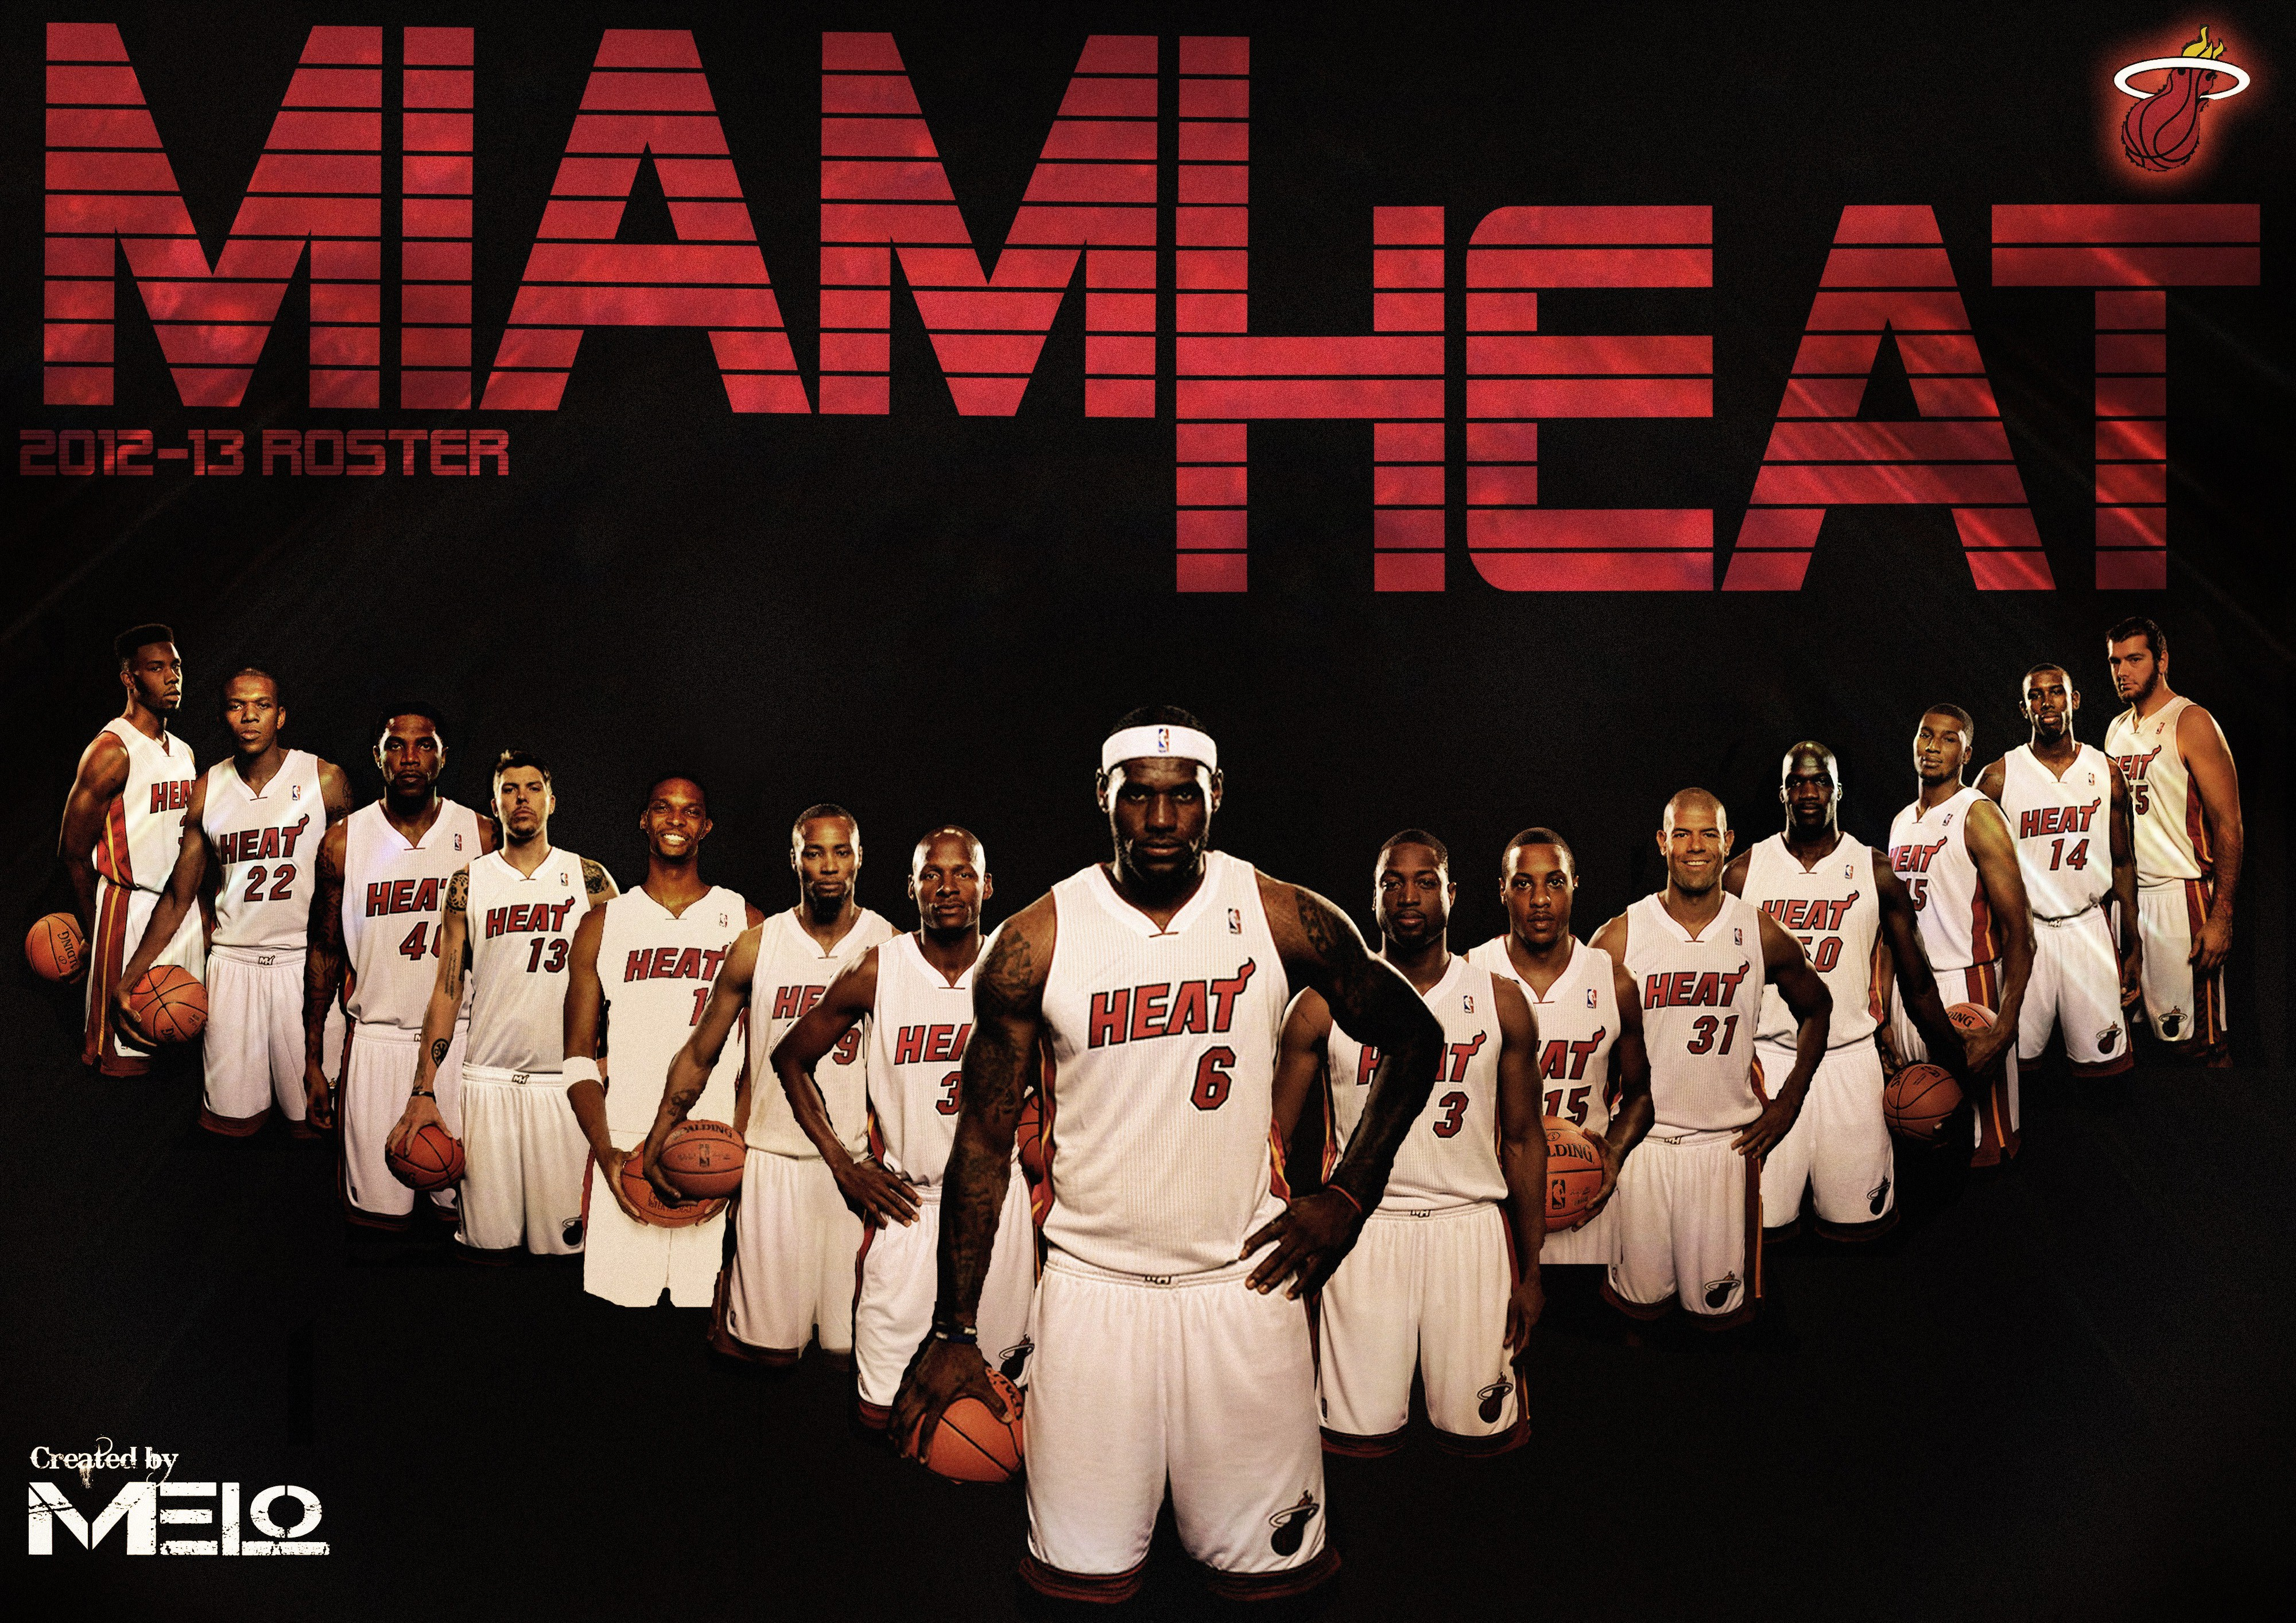 File Name : Best Miami Heat Wallpaper HD